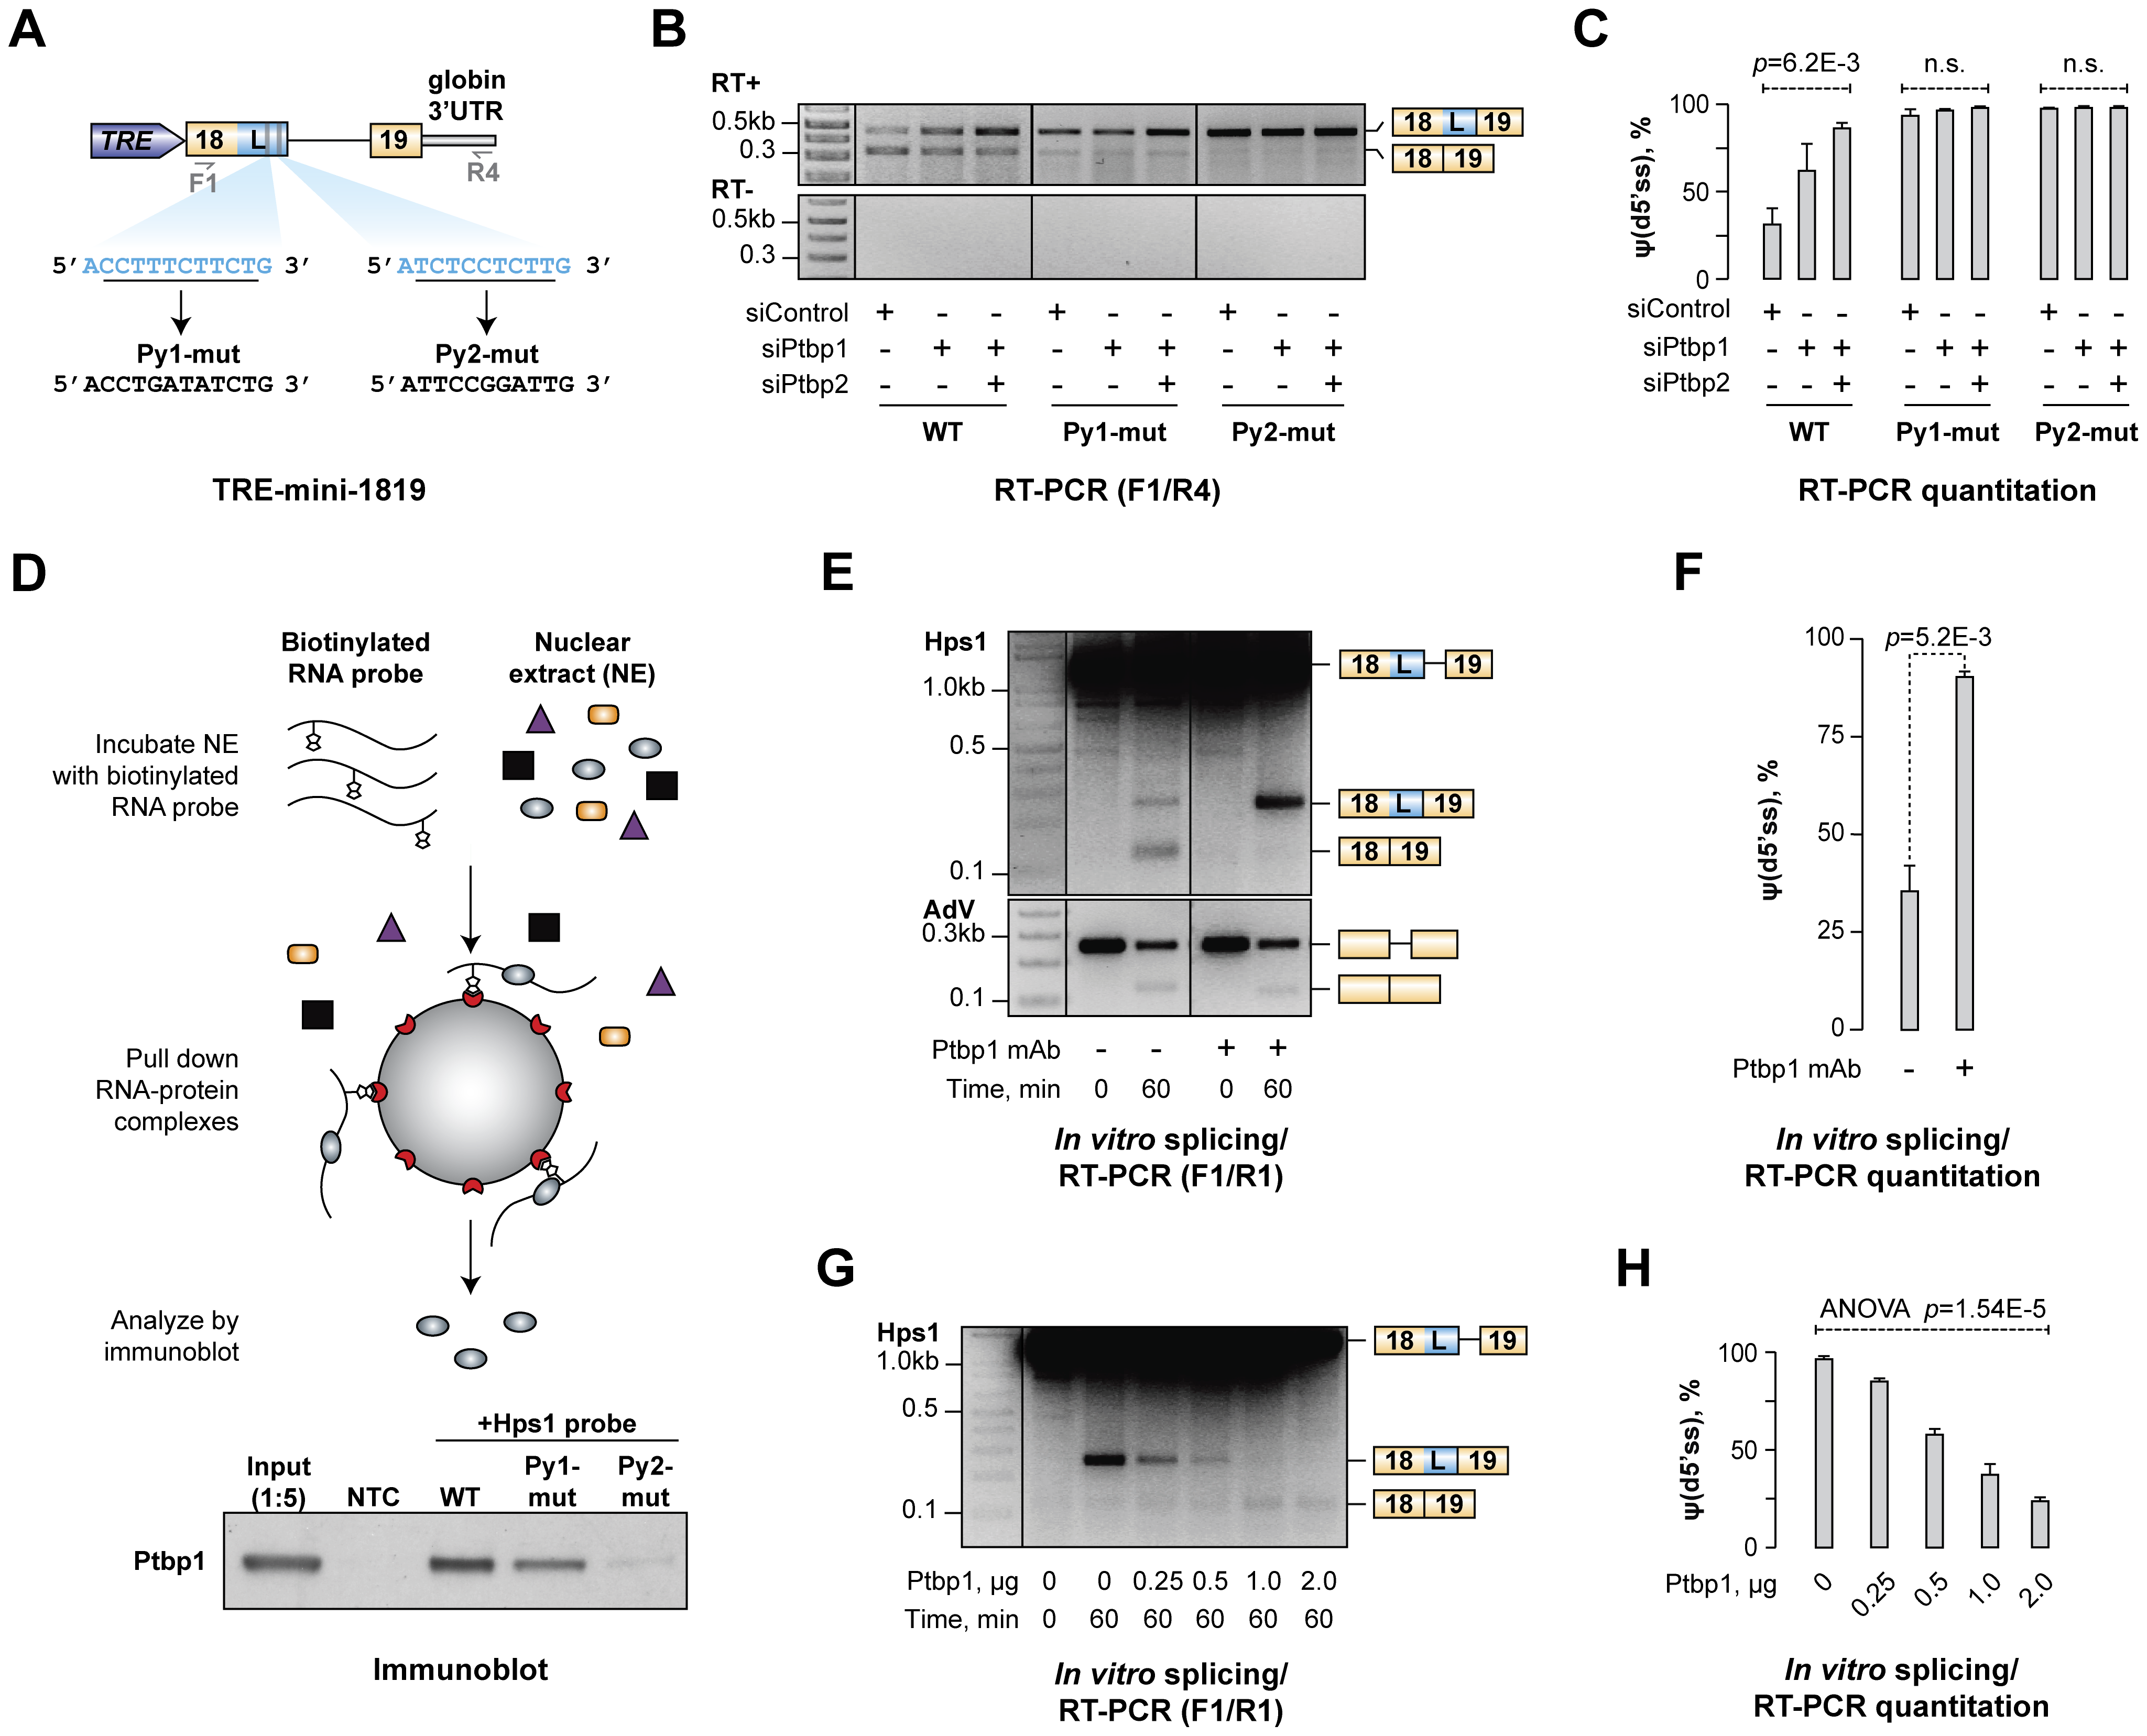 Ptbp1 binds to pyrimidine-rich sequences between u5′ss and d5′ss and directly regulates Hps1 A5C.